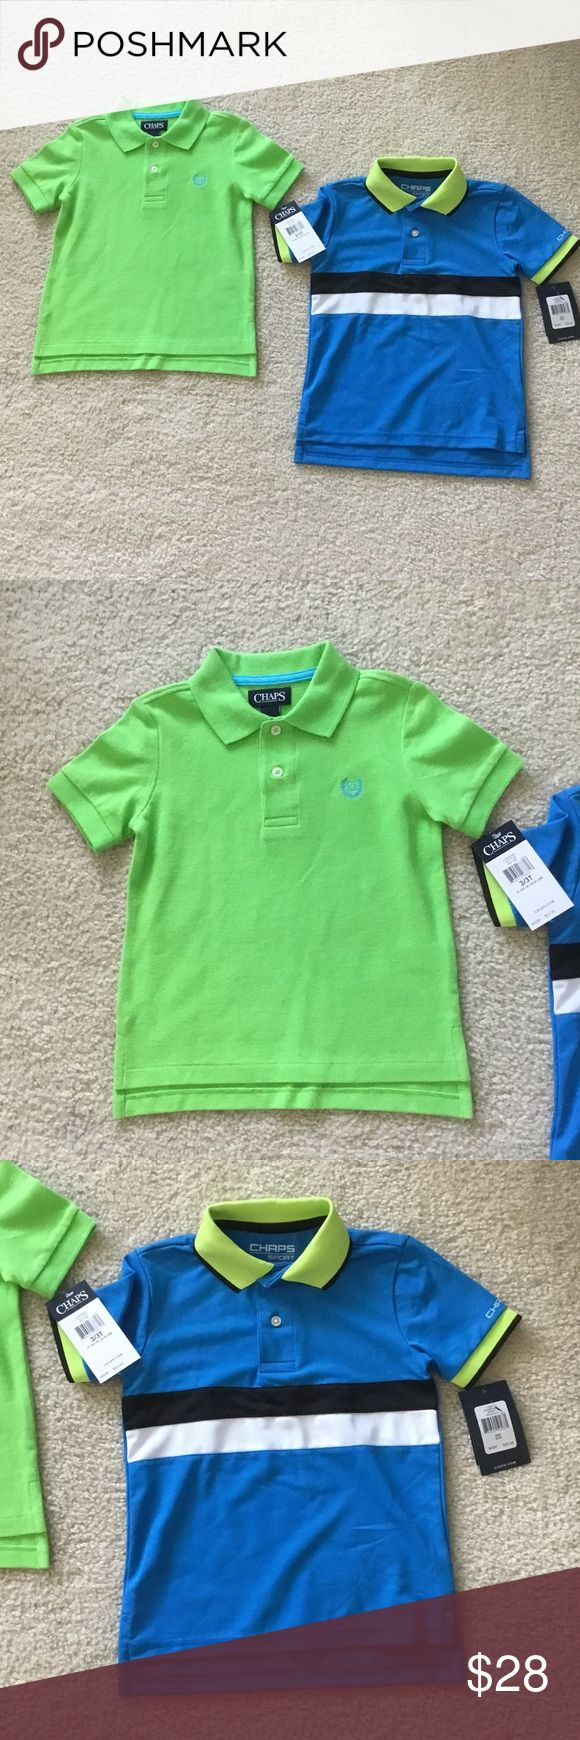 NWT Toddler Boys' Chaps Polos (Bundle of 2) sz 3T NWT Toddler Boys' Chaps Polo shirts, bundle of two (One light green with blue logo and one Chaps Sport, blue with black and white stripe). Size 3T. Two button placket. Vented hem. Chaps Shirts & Tops Polos